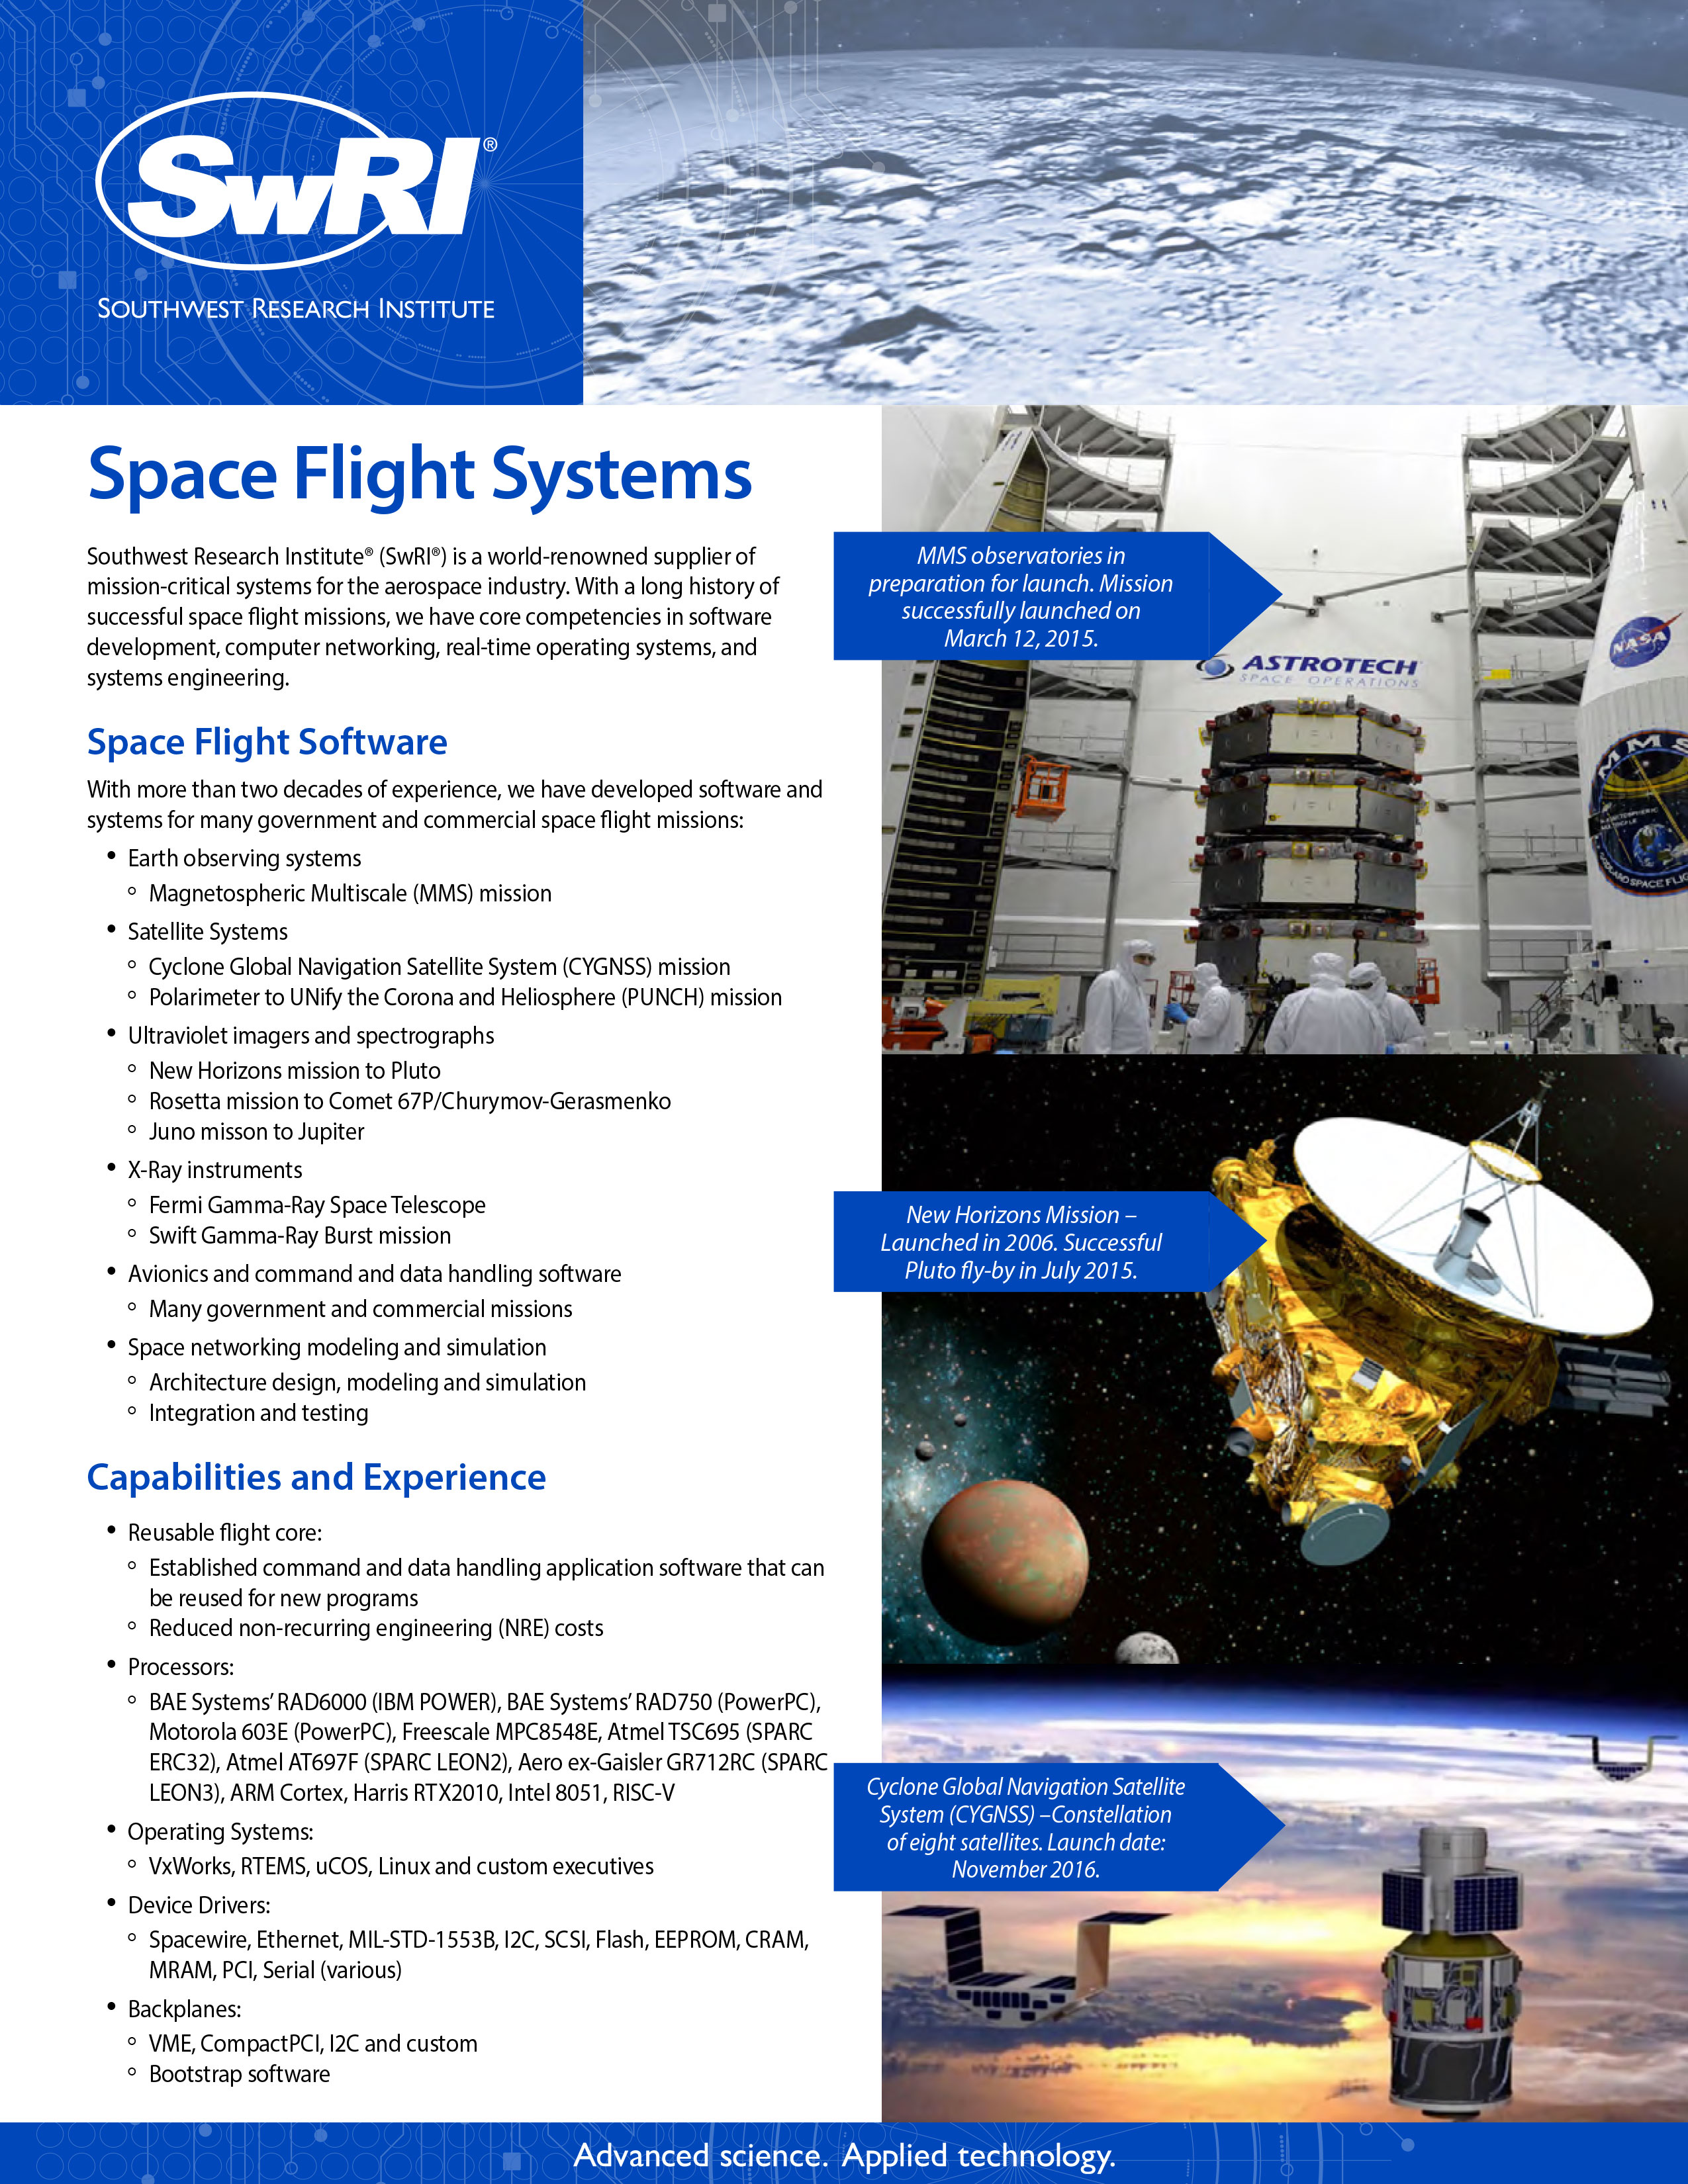 Go to Space Flight Systems flyer